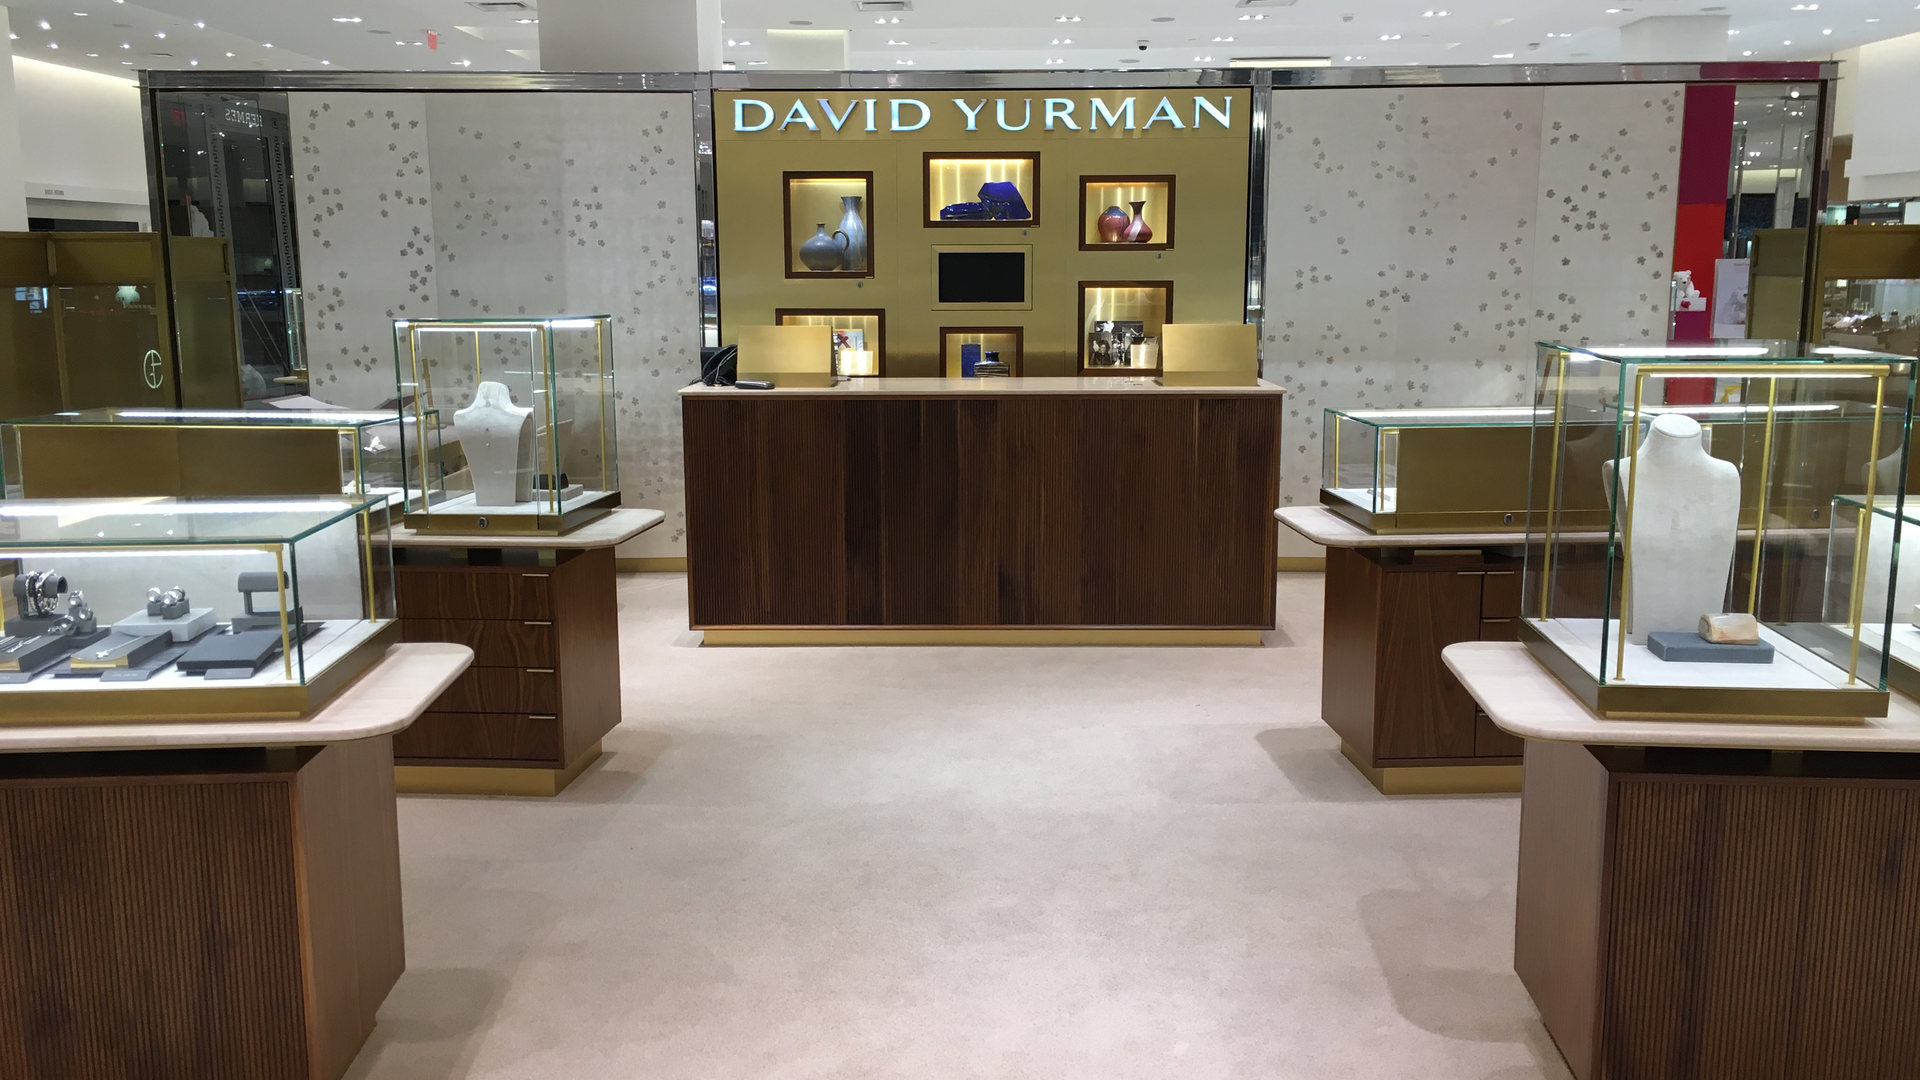 David Yurman Holt Renfrew - Calgary_2.JP